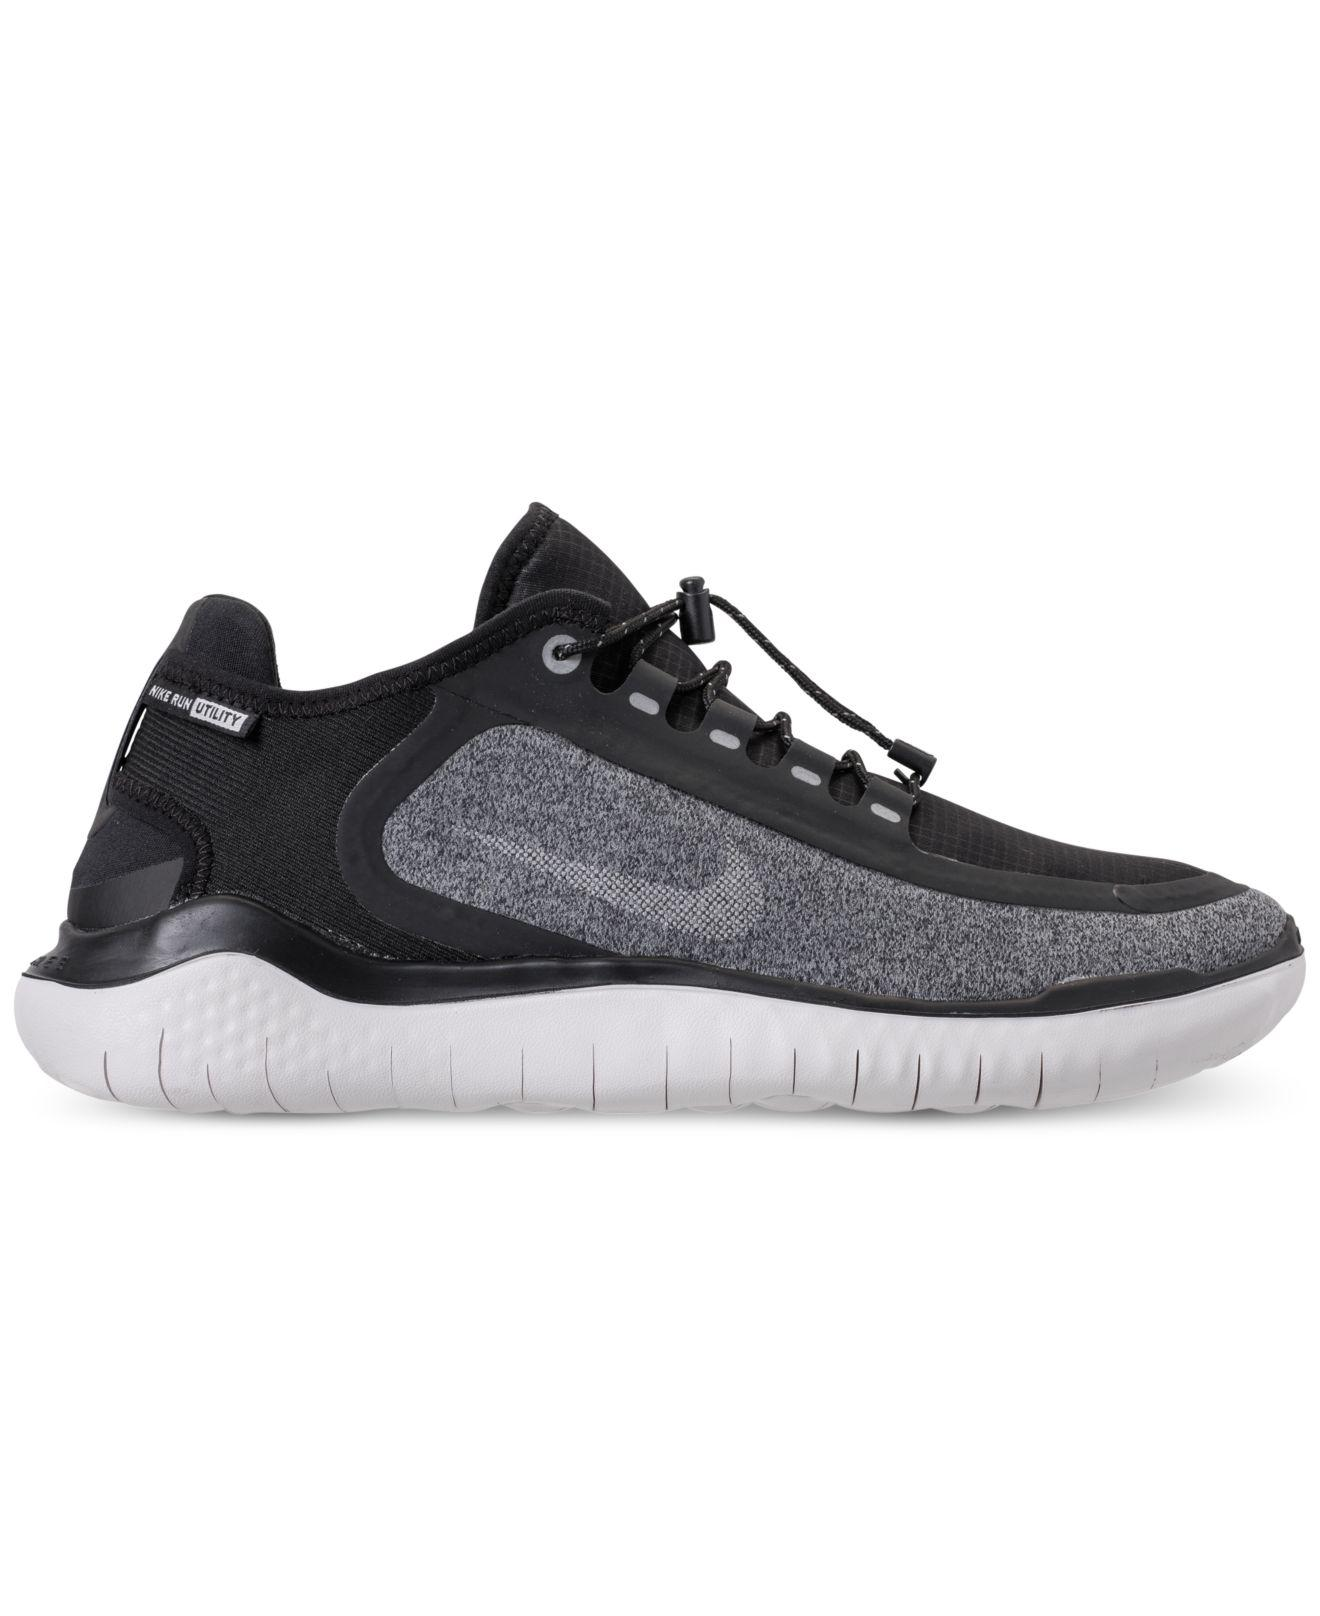 87246f87550 Nike - Black Free Rn 2018 Shield Running Sneakers From Finish Line for Men  - Lyst. View fullscreen